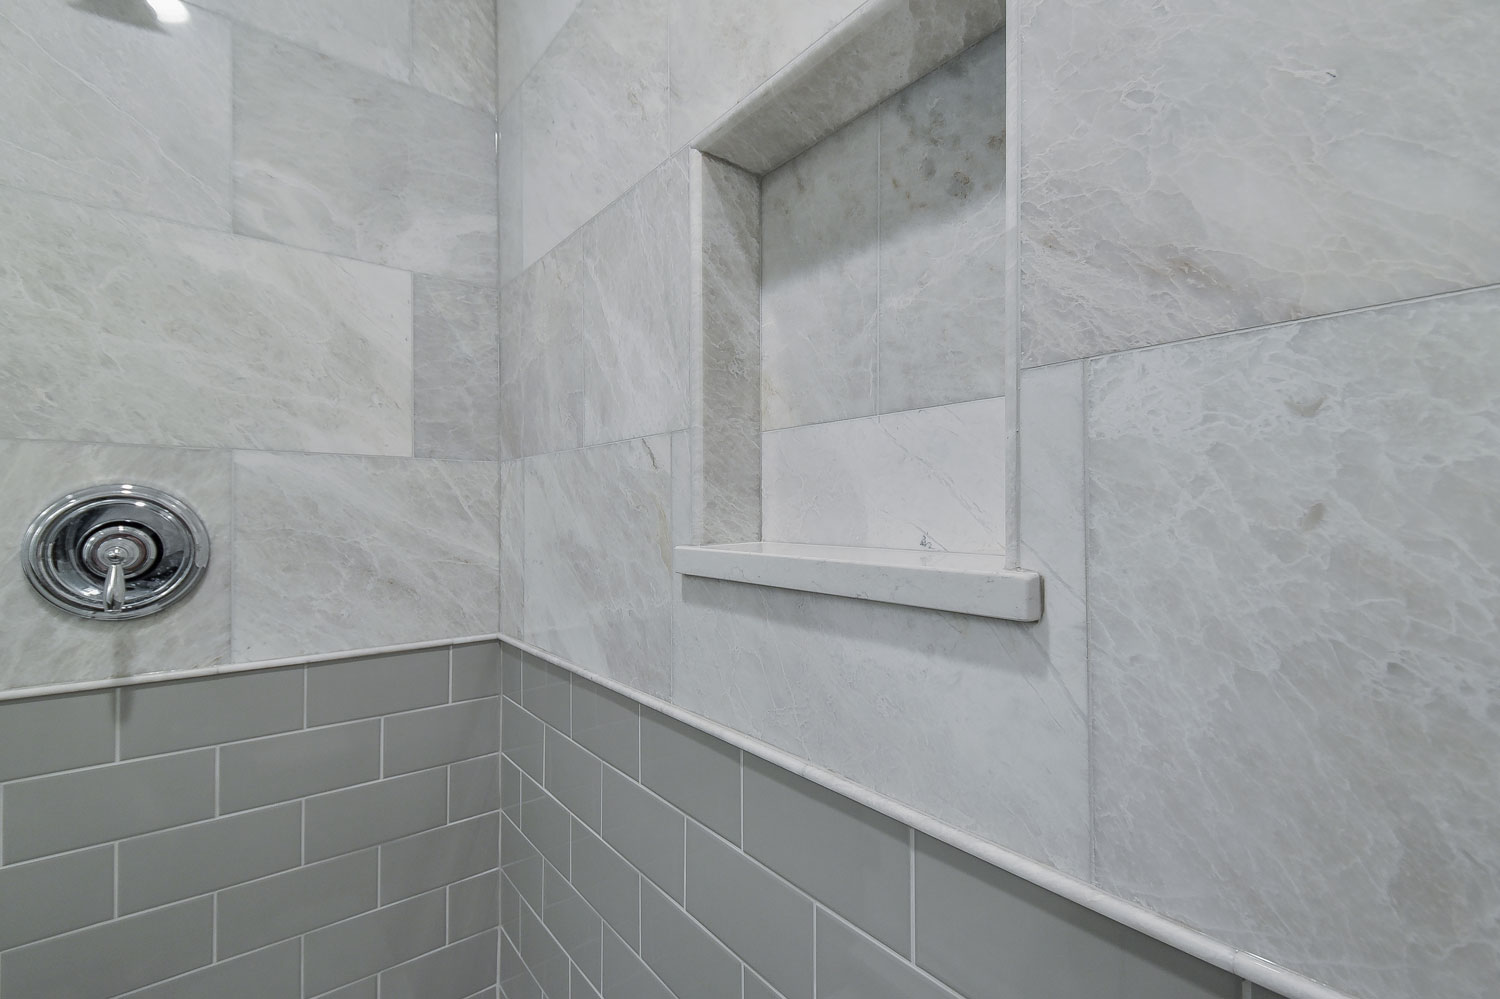 Richards master bathroom remodel pictures home remodeling lisle master bathroom remodel quartz grey subway tile walk in shower dailygadgetfo Gallery